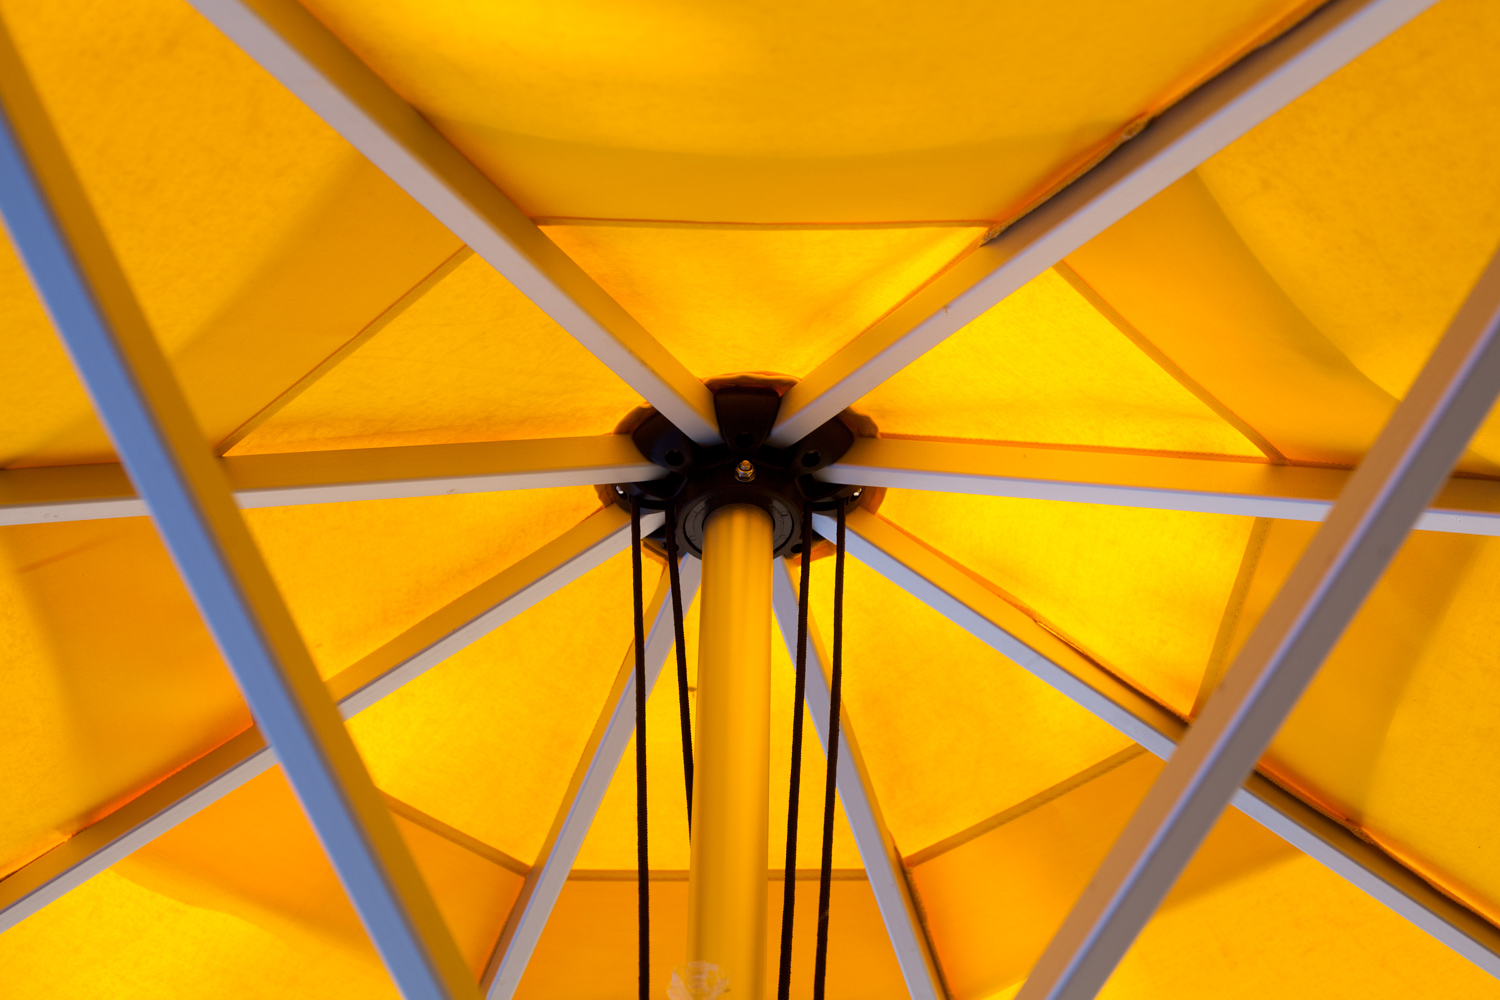 Image: A lighter lens meant I could easily sneak my camera under this umbrella for a photograph